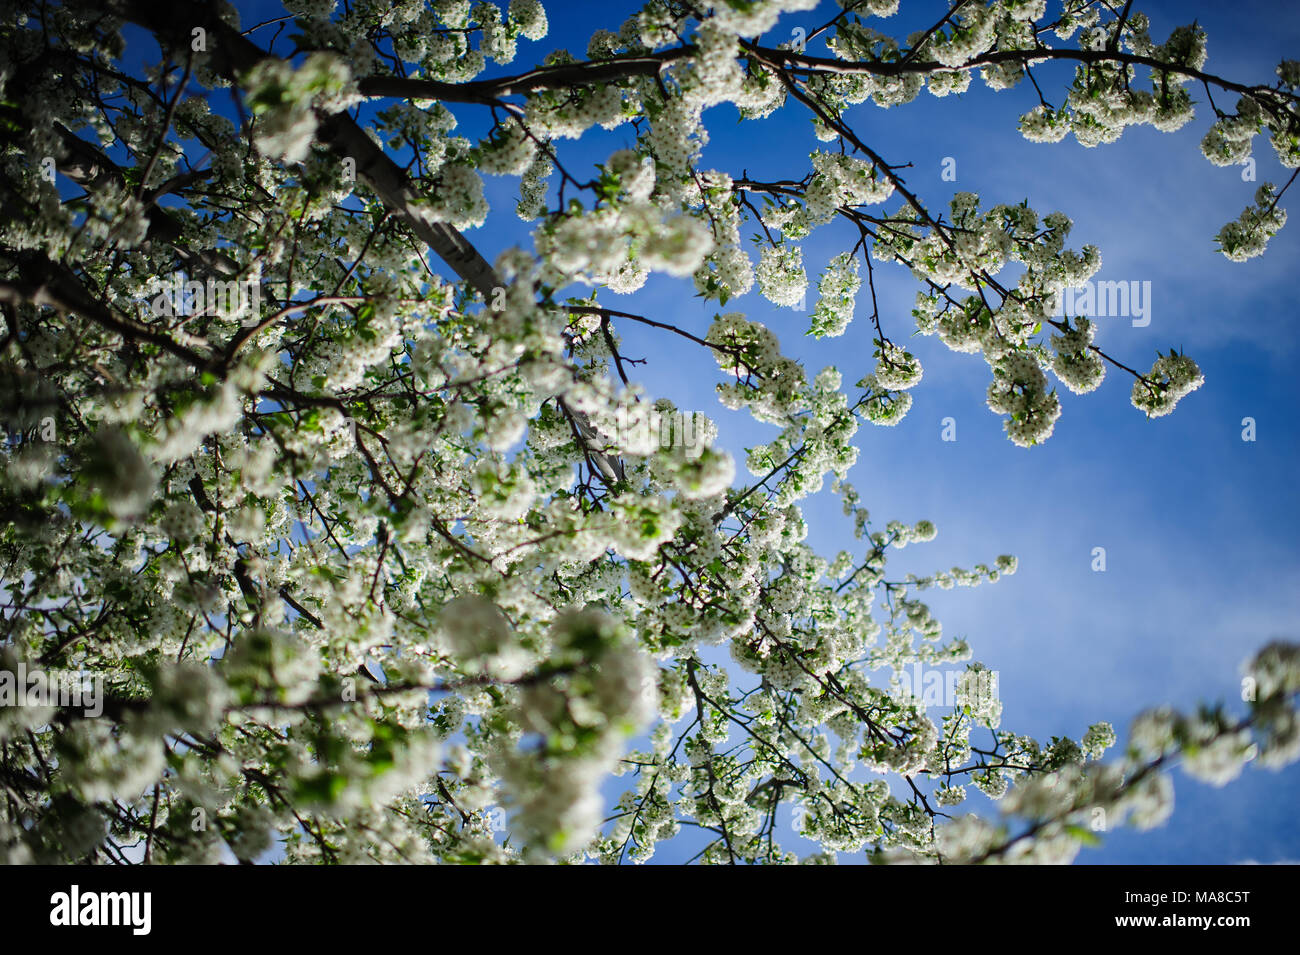 White Flowers On A Blooming Crabapple Tree Seen Against The Blue Sky